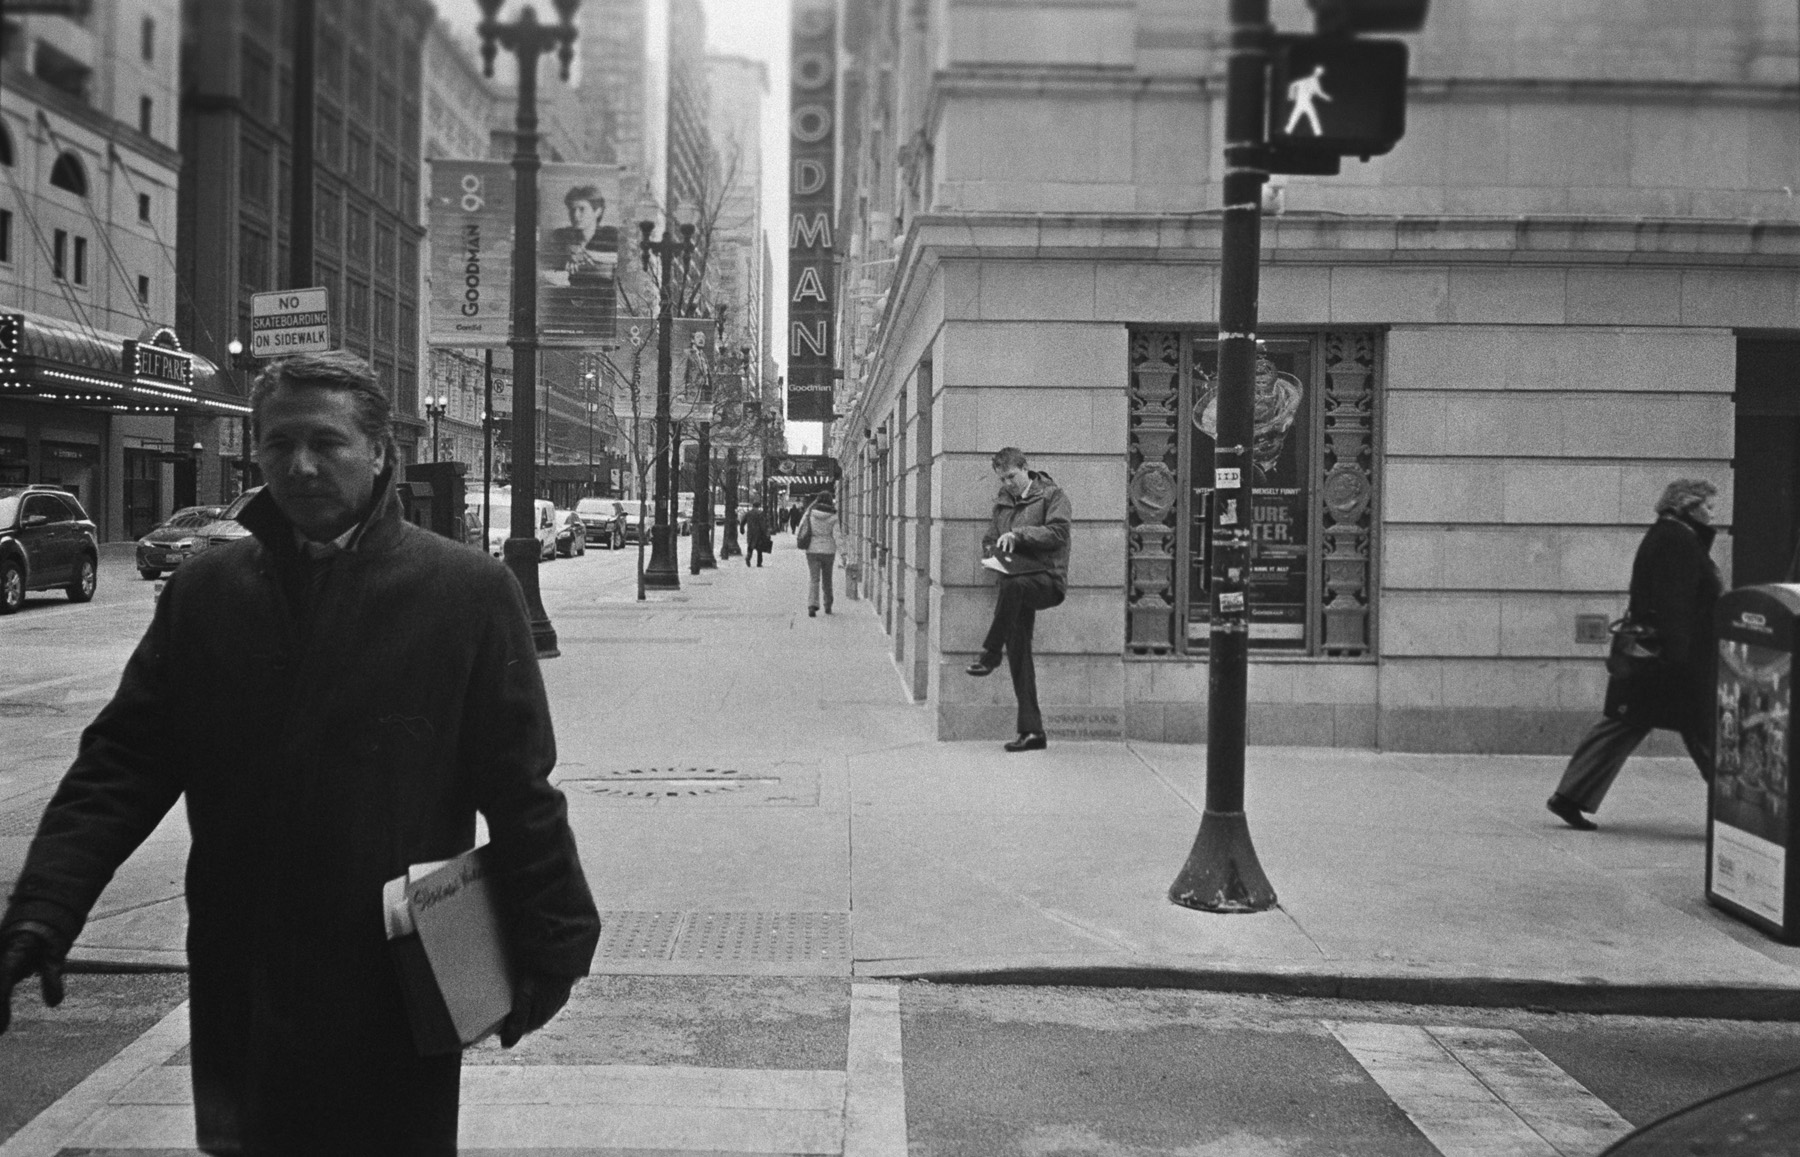 a film shot of a lawyer crossing the street in a dress winter coat, in the background you can see a man leaning up against a building looking through some documents on his knee.